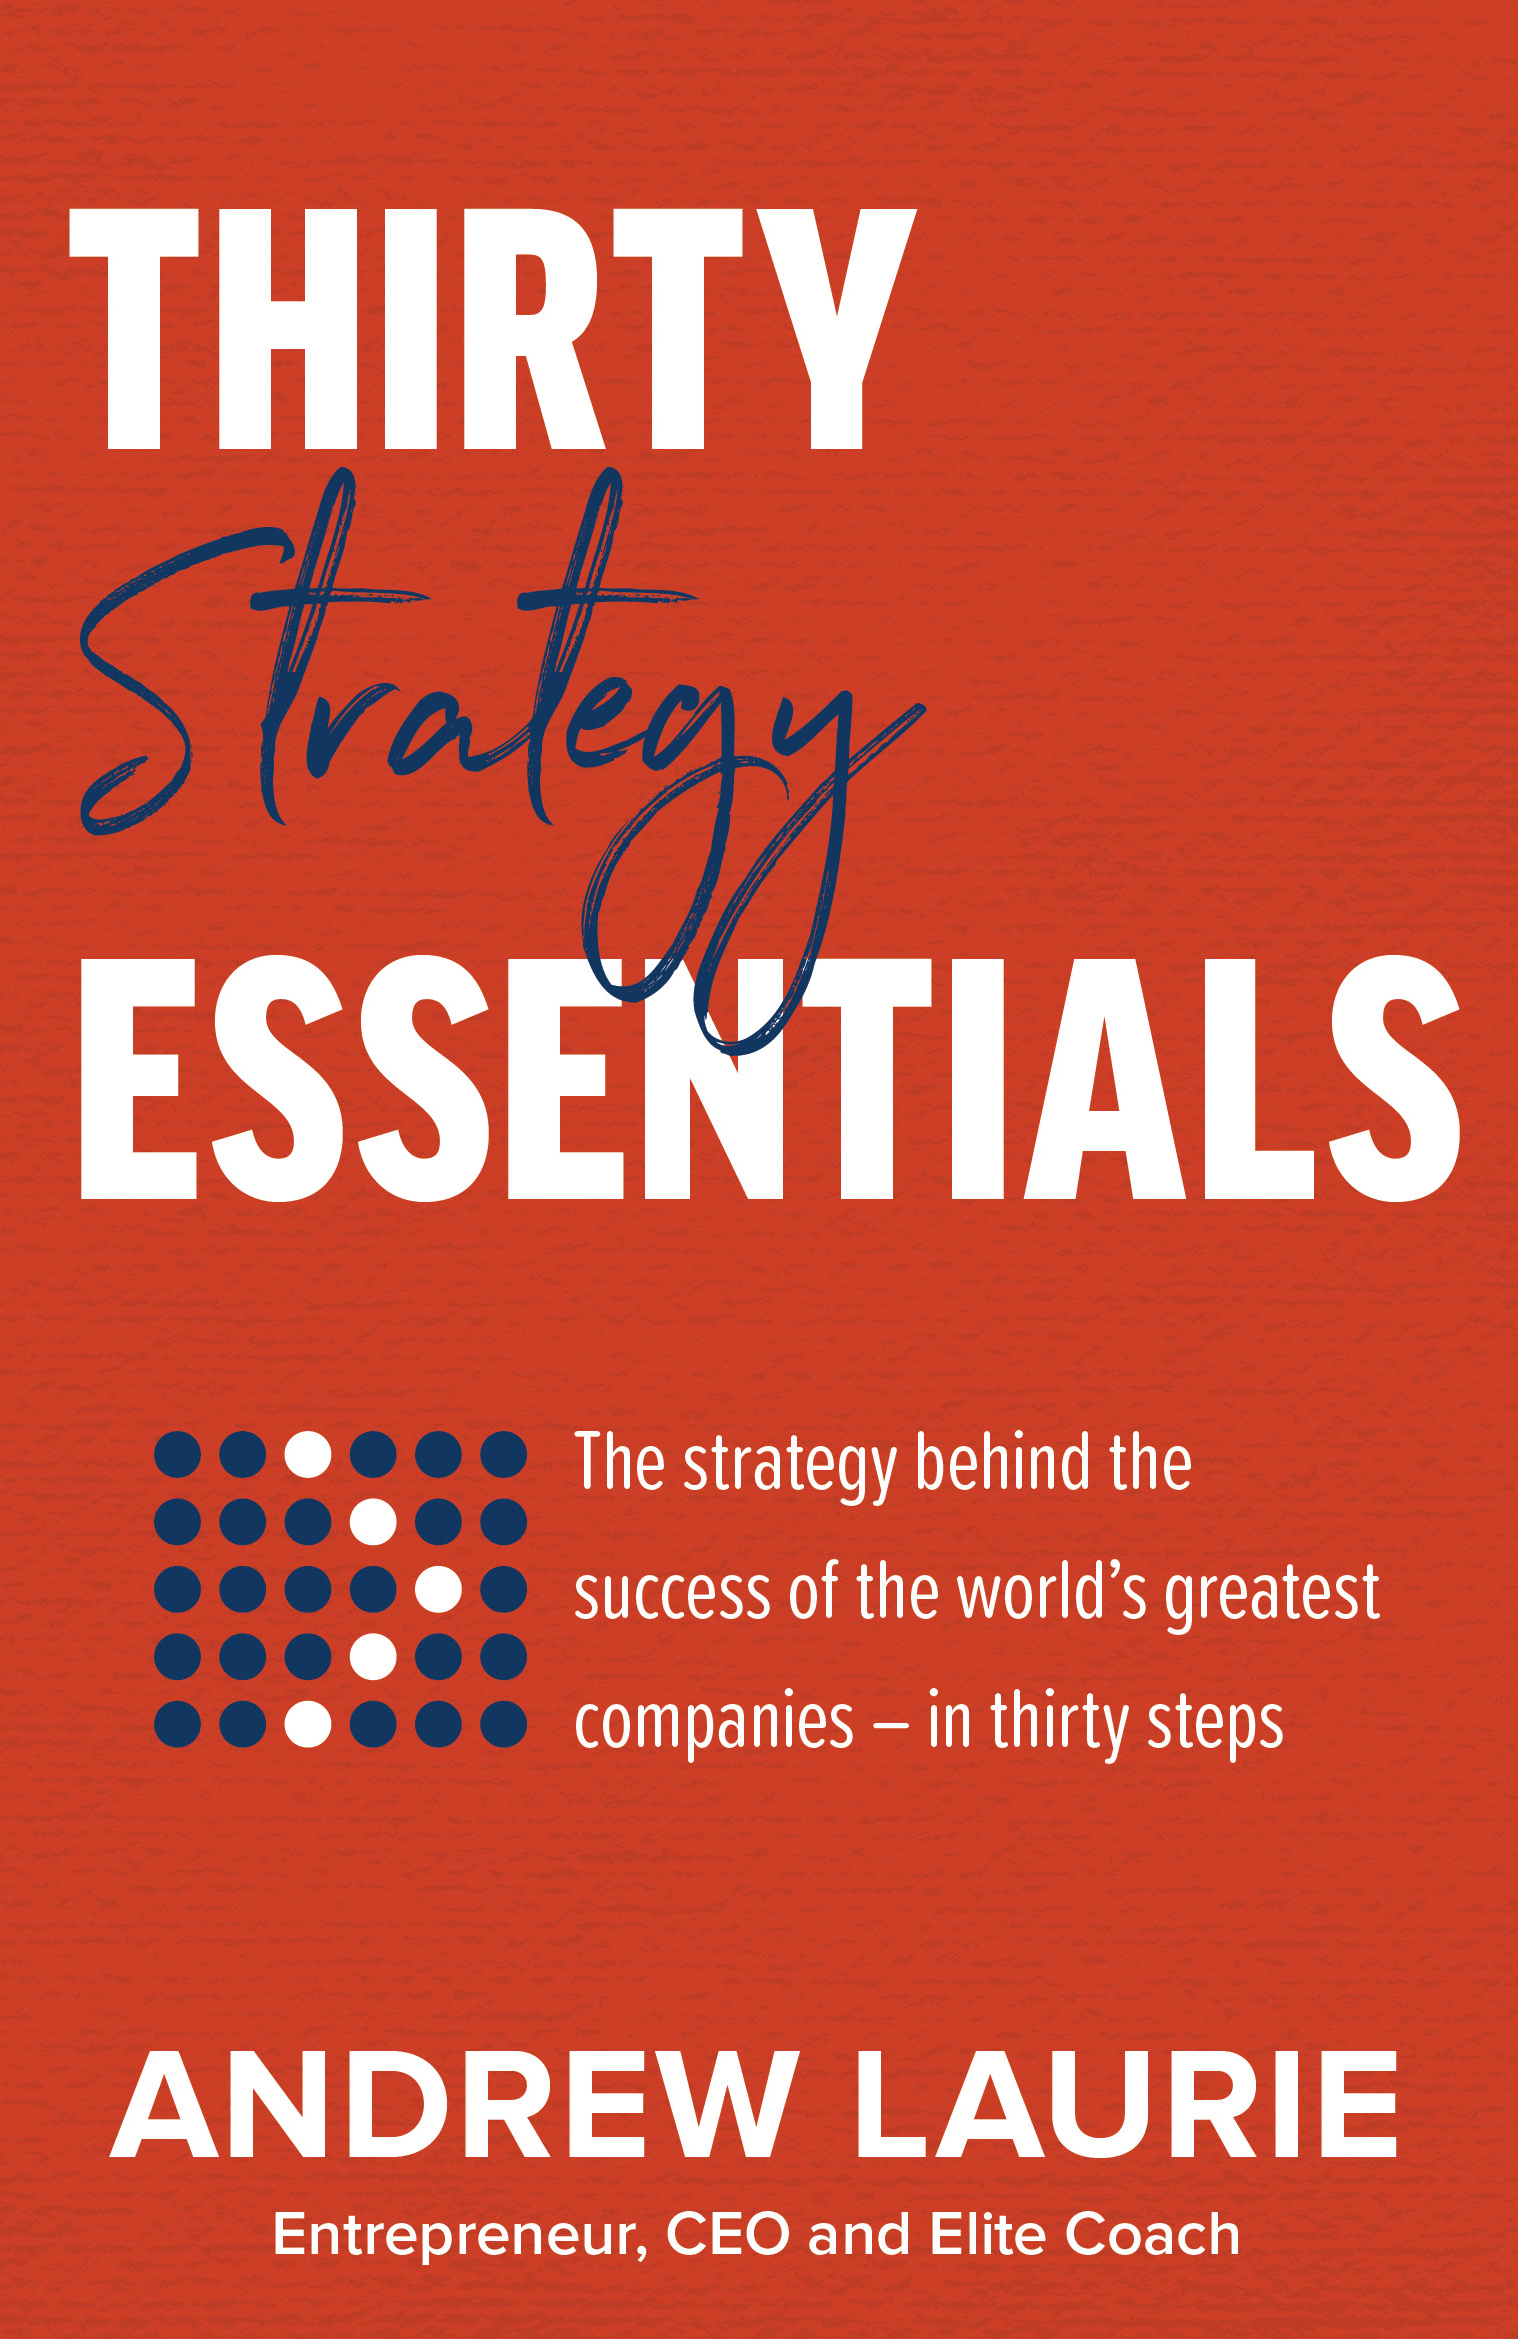 Thirty Essentials Strategy_cover_FINALISED.high res.jpg